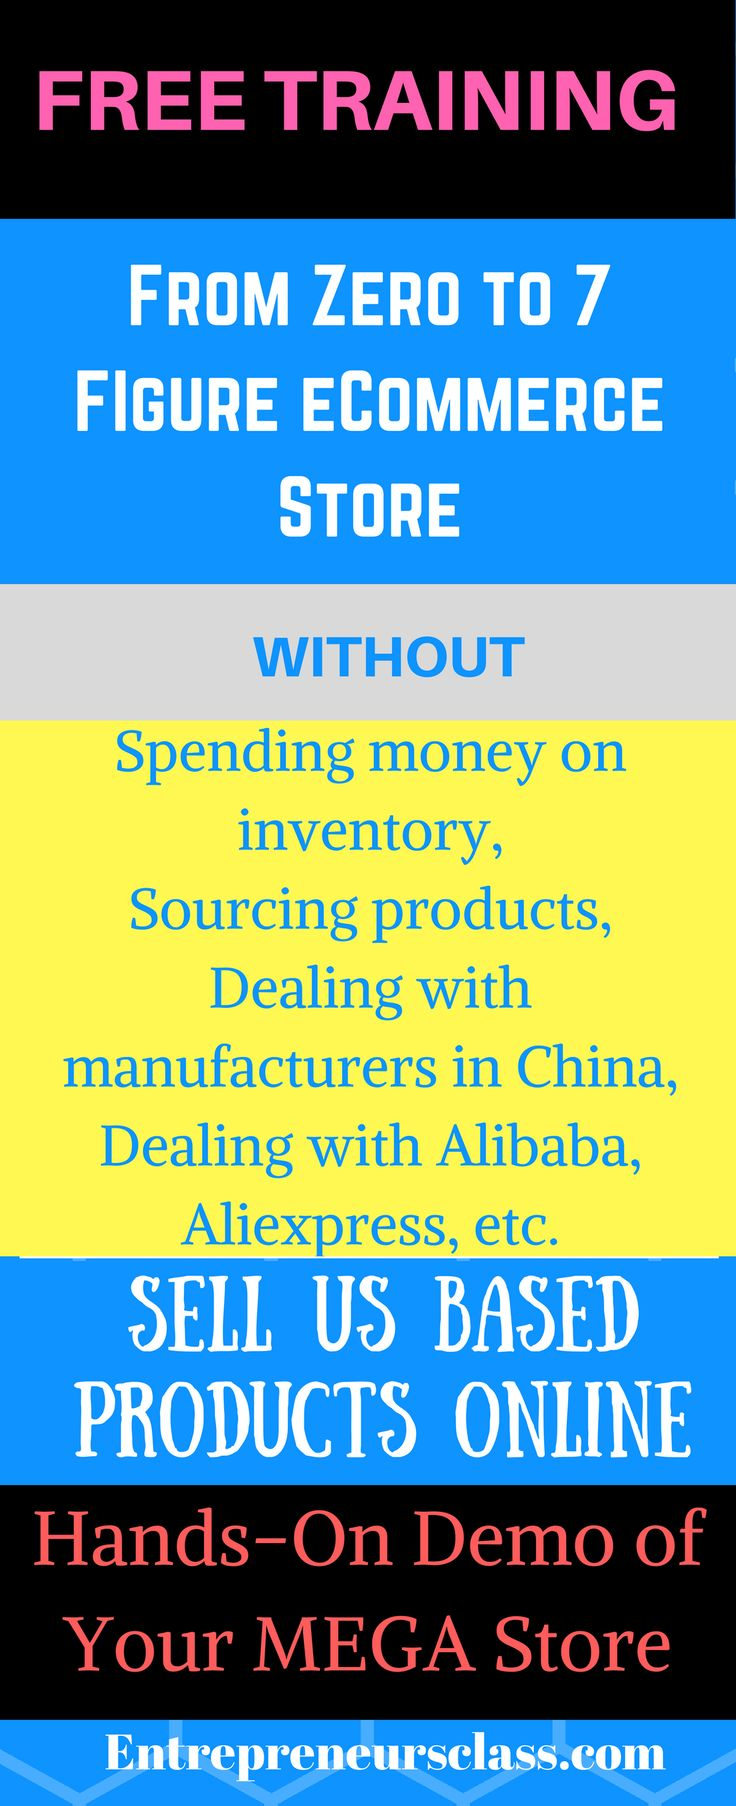 eCommerce store training.Learn how to build 7-figure a year selling US based products with over 2,000 ready to sell products without Spending money on inventory, Sourcing products, Dealing with manufacturers in China, Dealing with Alibaba, Aliexpress, etc.